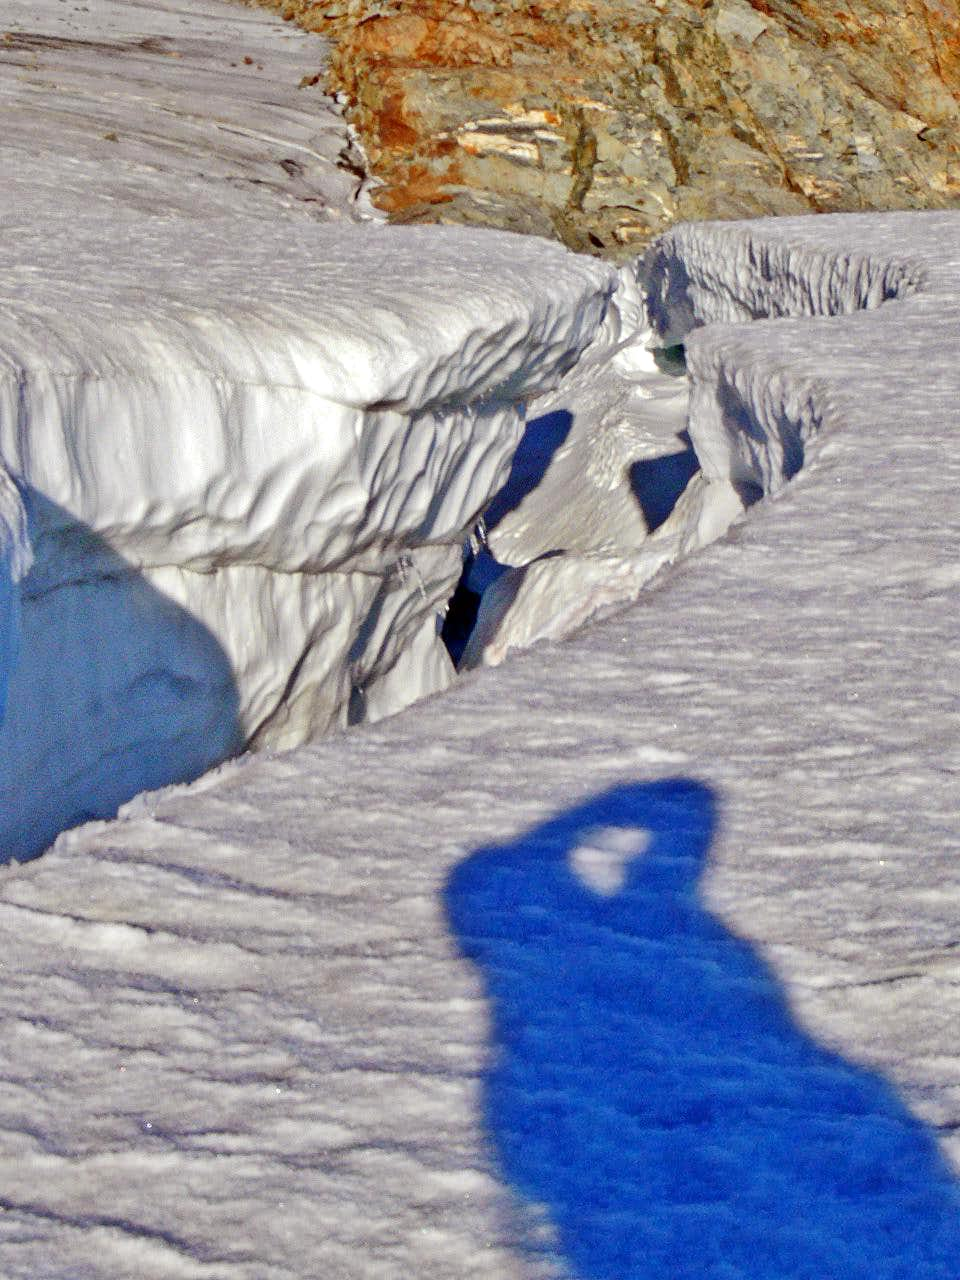 One of the Many Crevasses